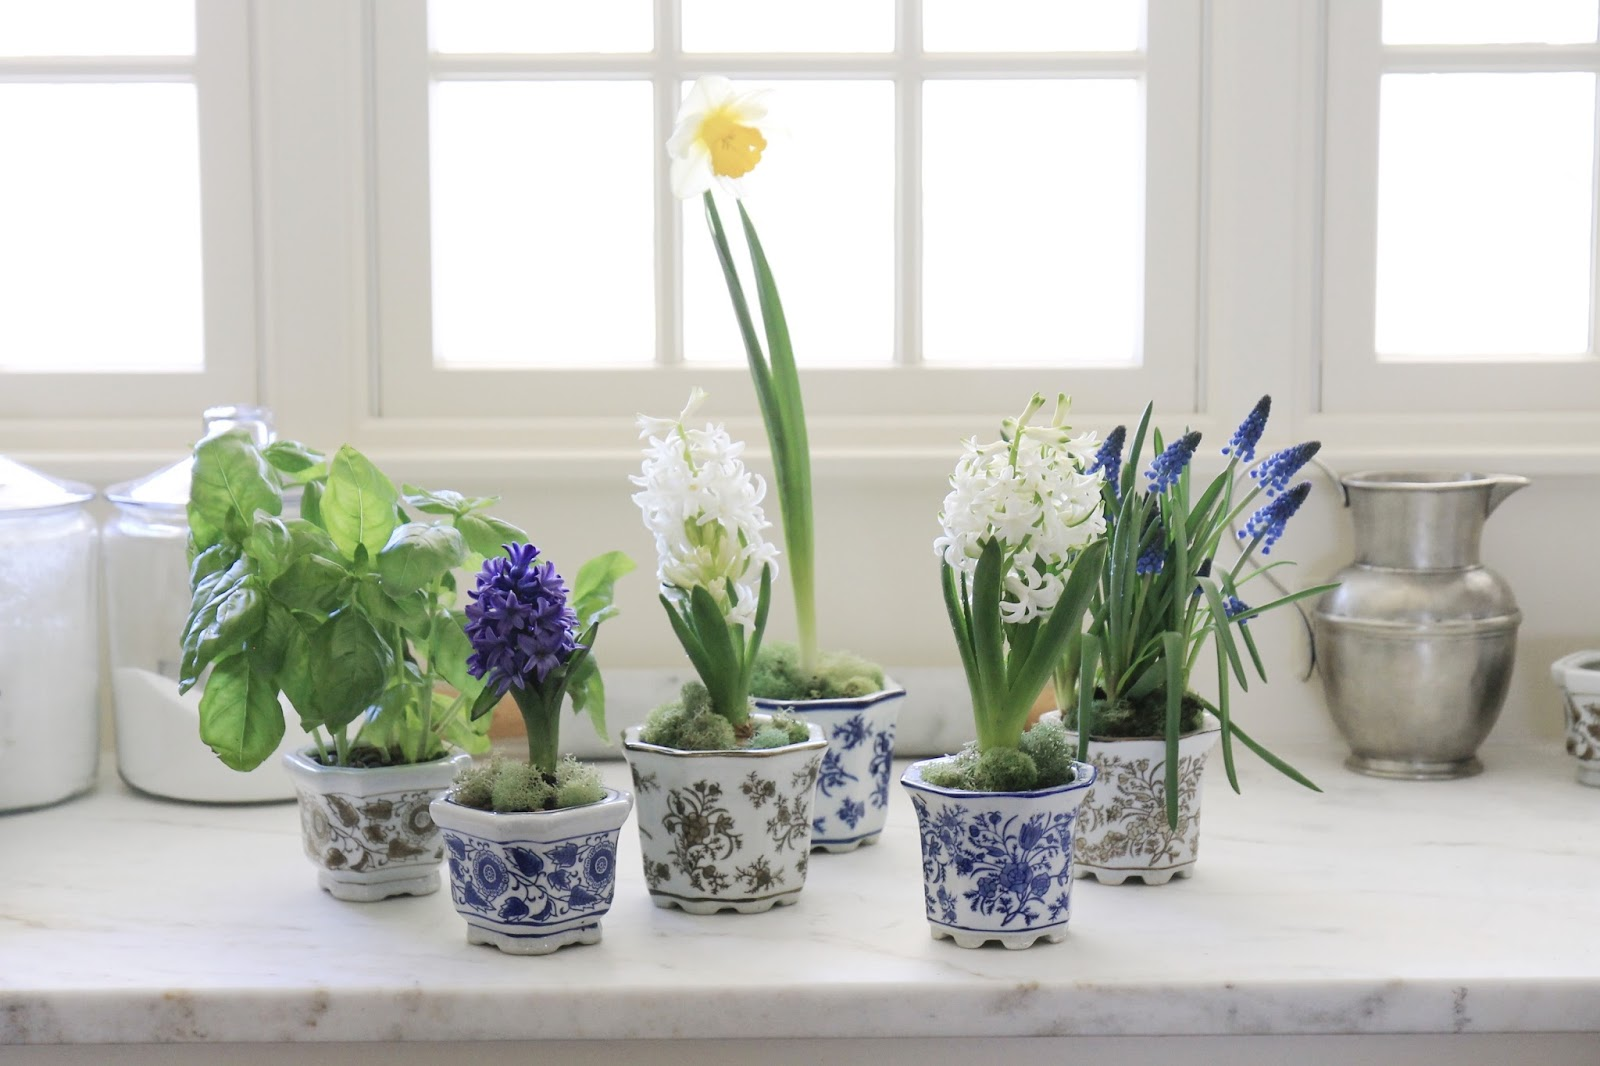 Small White Ceramic Planters Jenny Steffens Hobick Planters Blue And White Ceramic